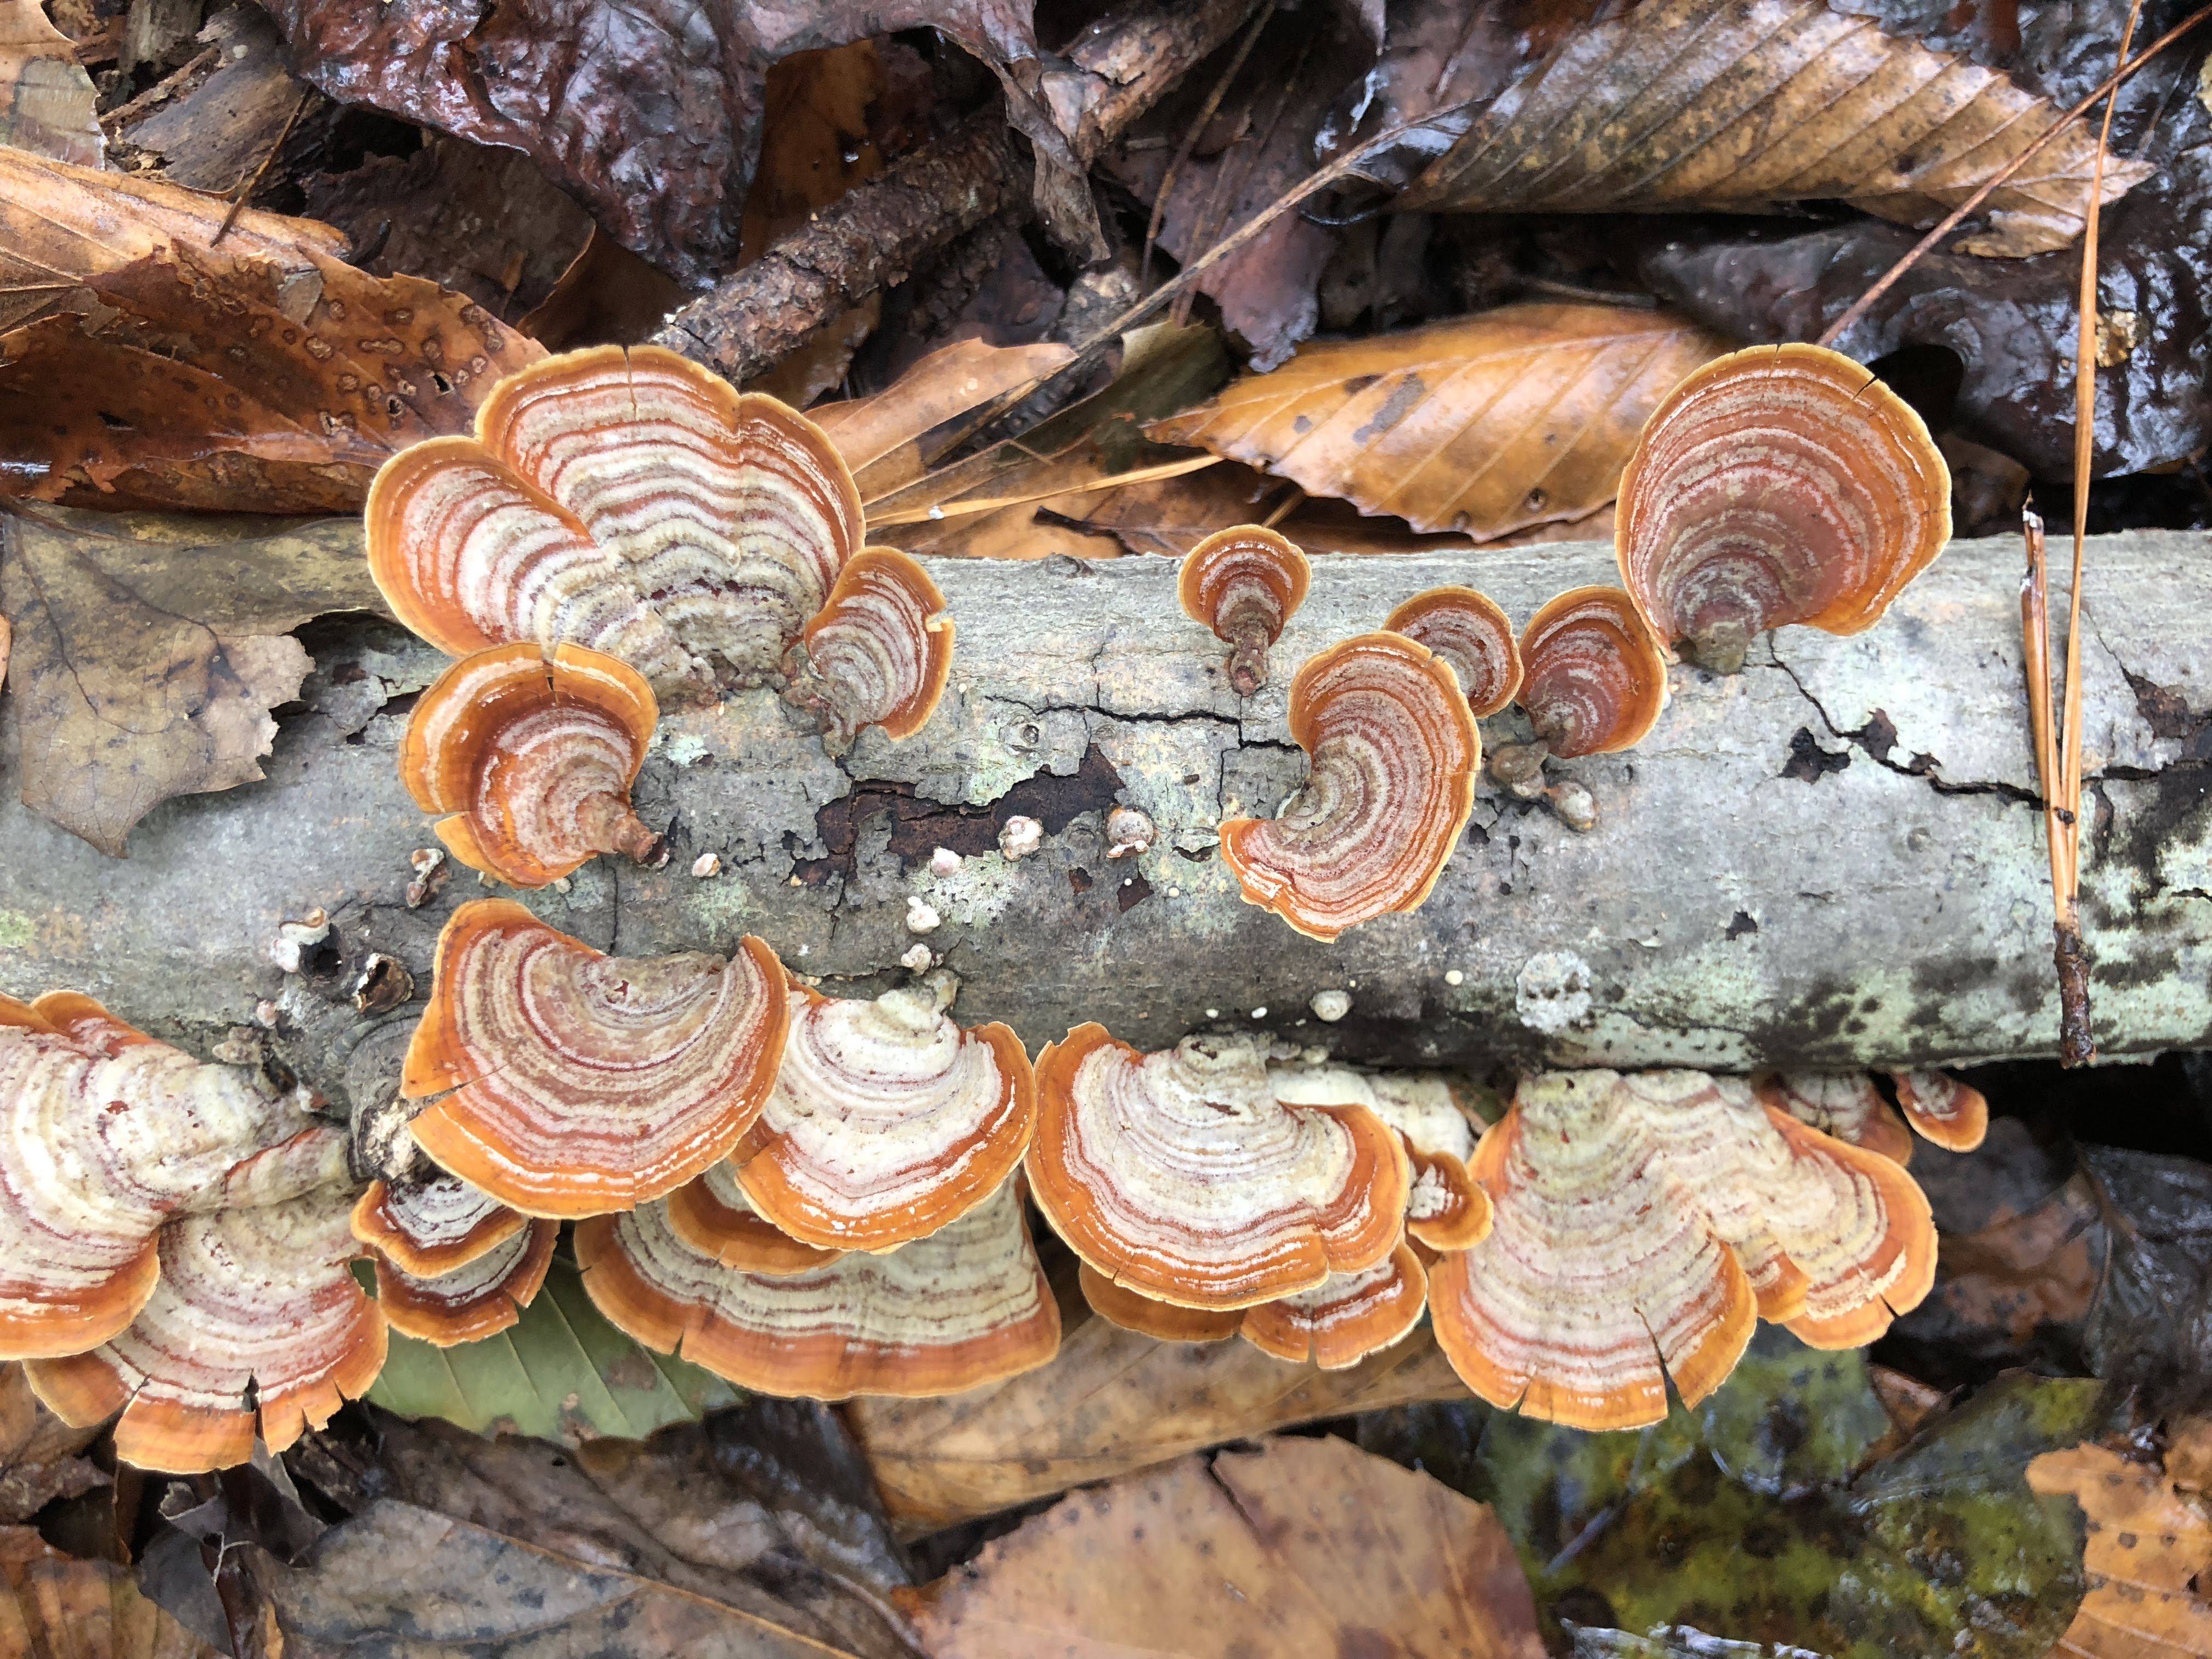 Stereum ostrea (also called false turkey-tail and golden curtain crust)